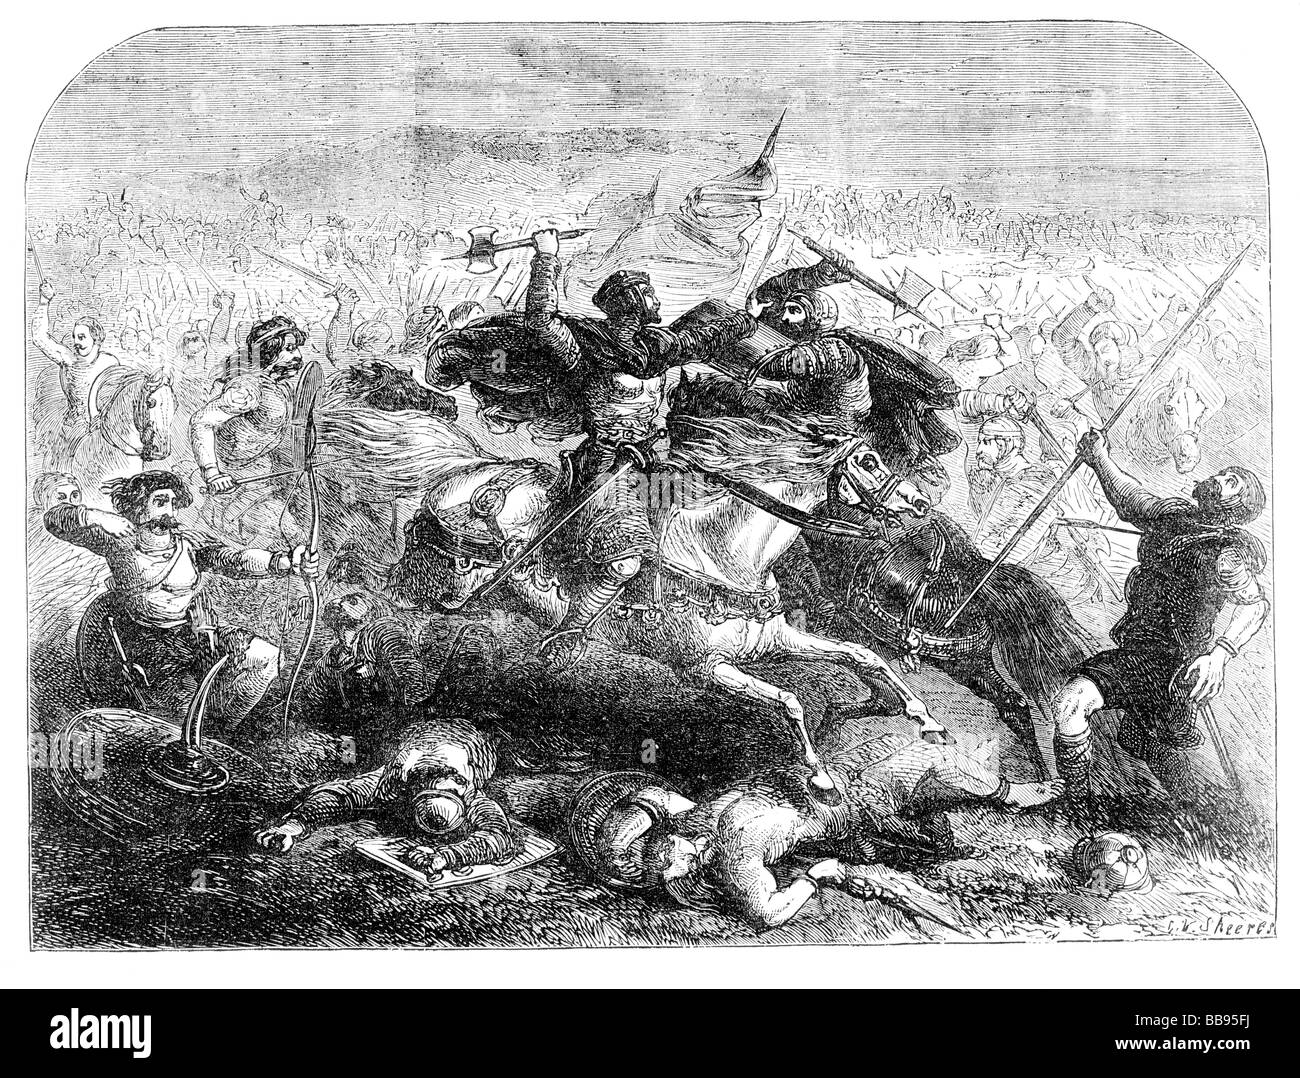 A Depiction of The Defeat of the Saxons by Arthur in the 6th Century Stock Photo